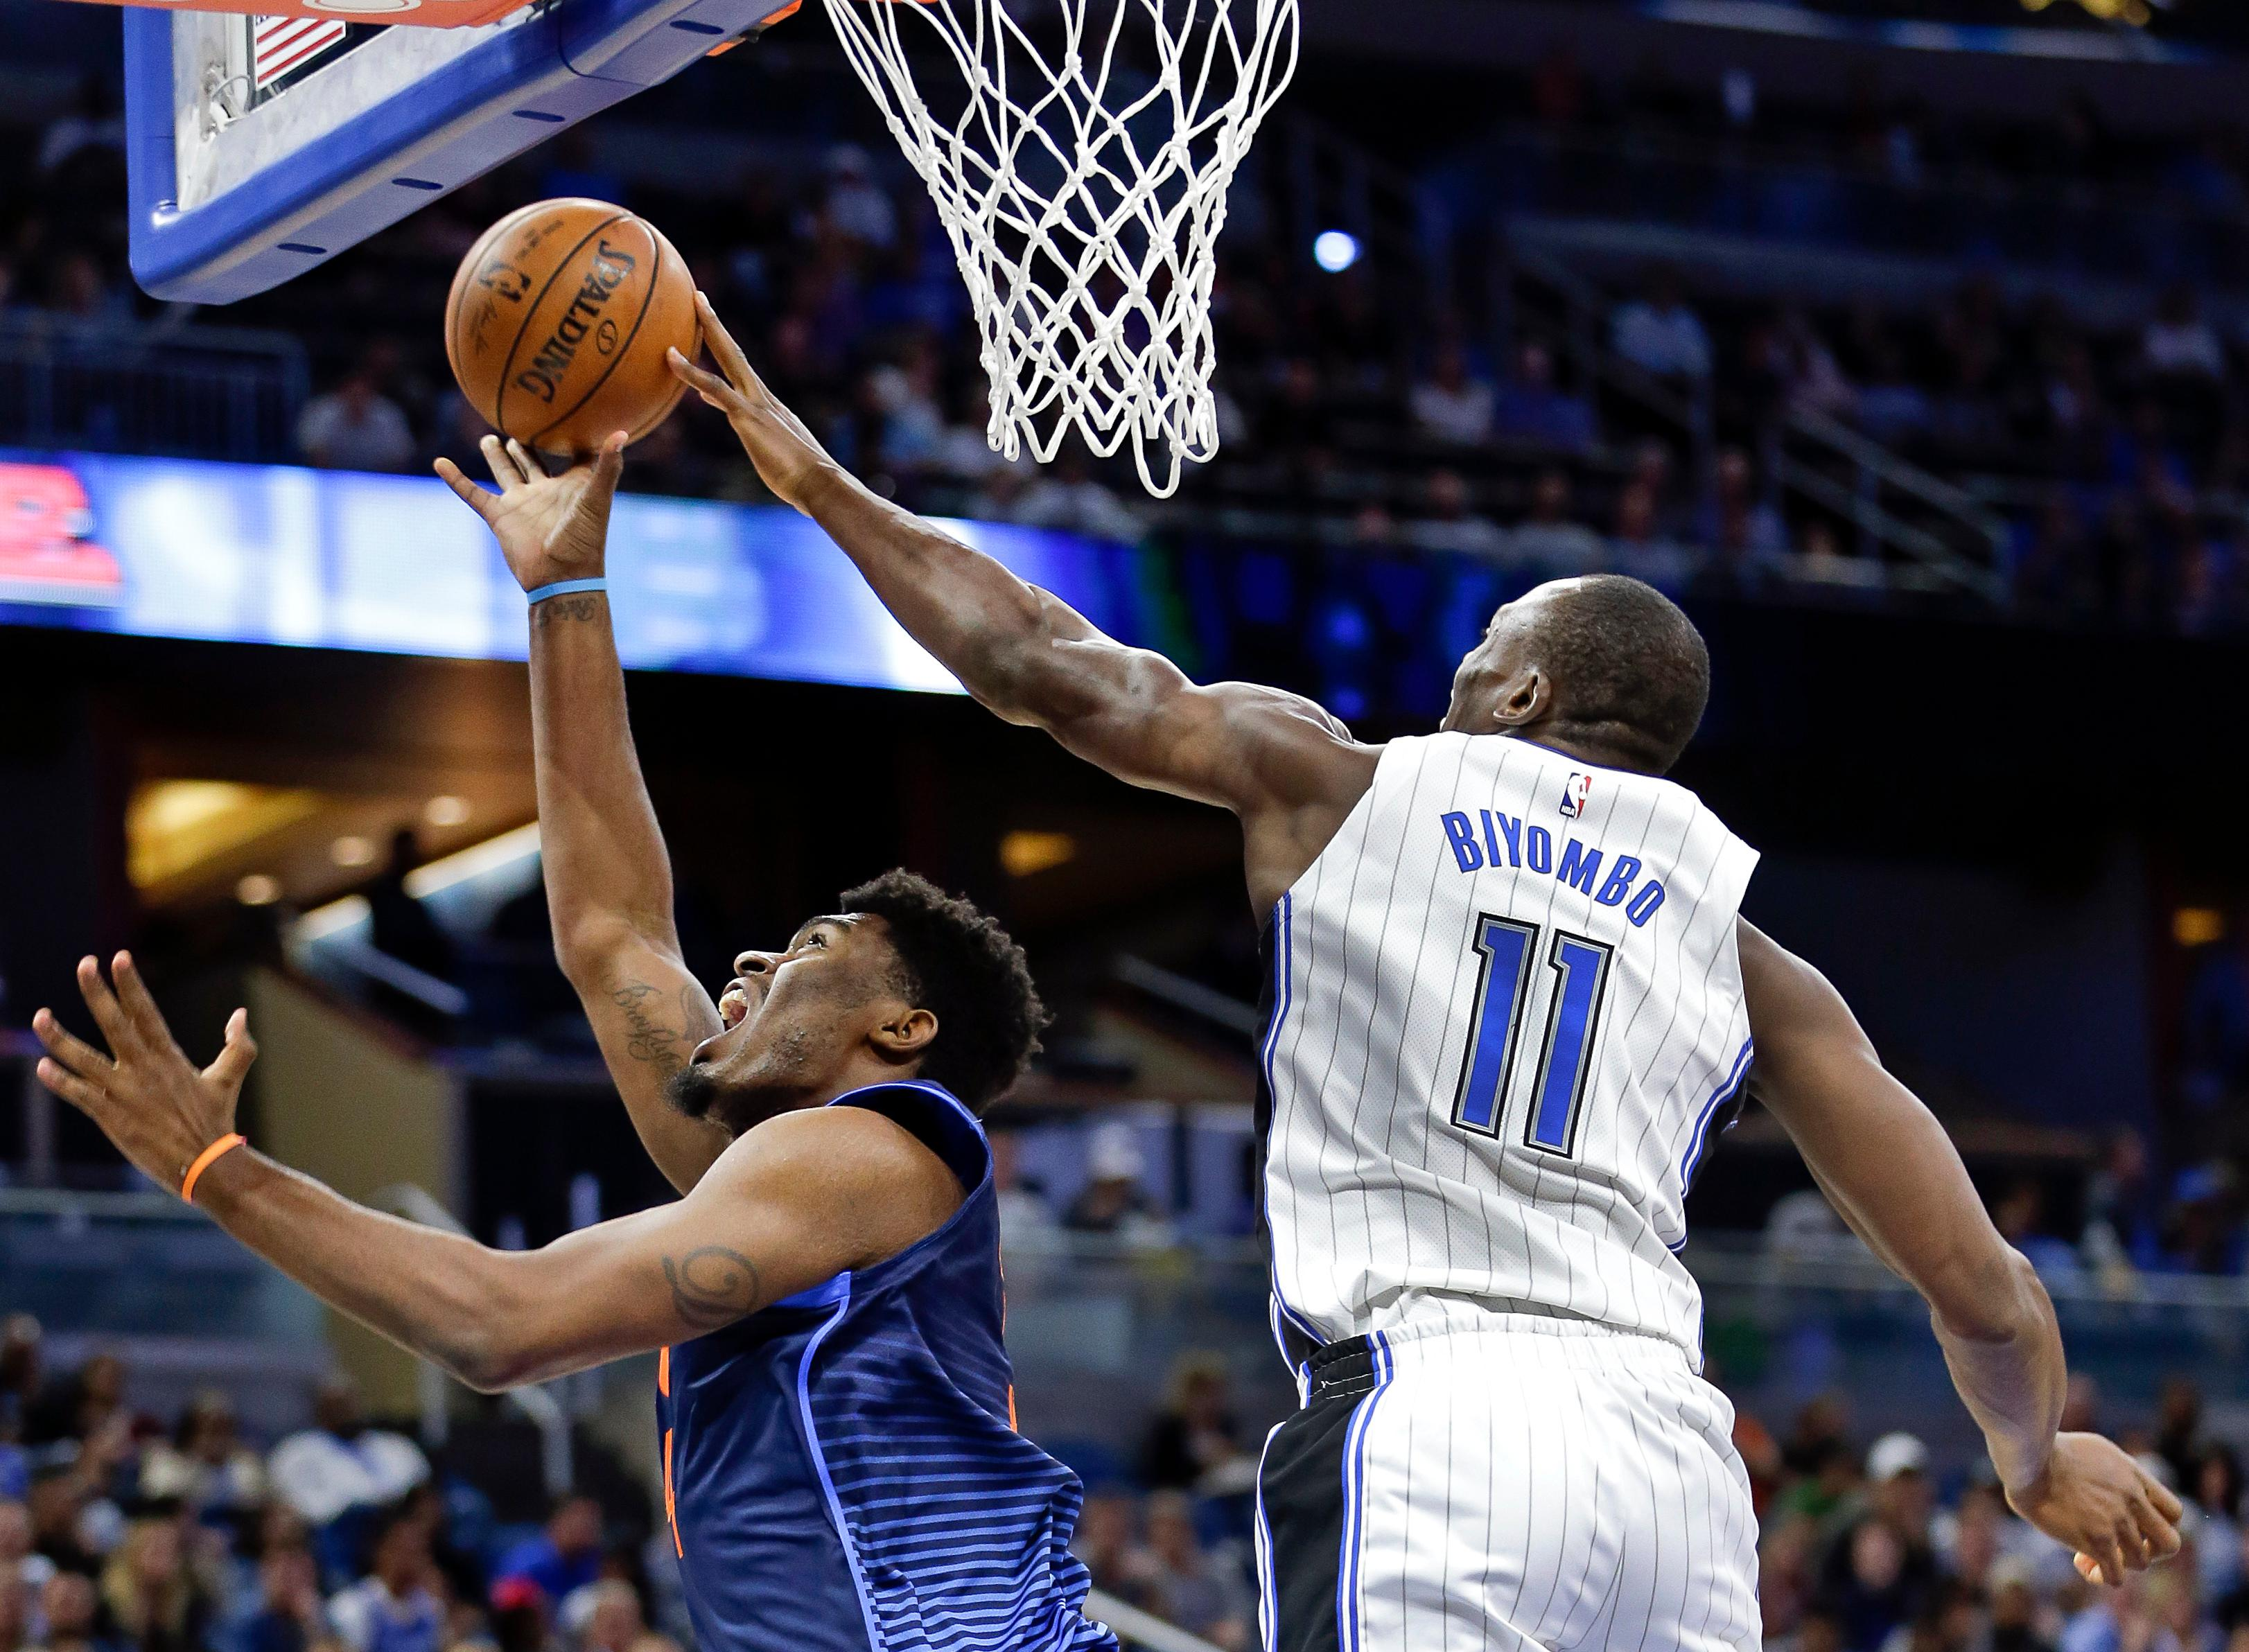 Orlando Magic's Bismack Biyombo (11) blocks a shot attempt by Oklahoma City Thunder's Dakari Johnson during the first half of an NBA basketball game, Wednesday, Nov. 29, 2017, in Orlando, Fla. (AP Photo/John Raoux)